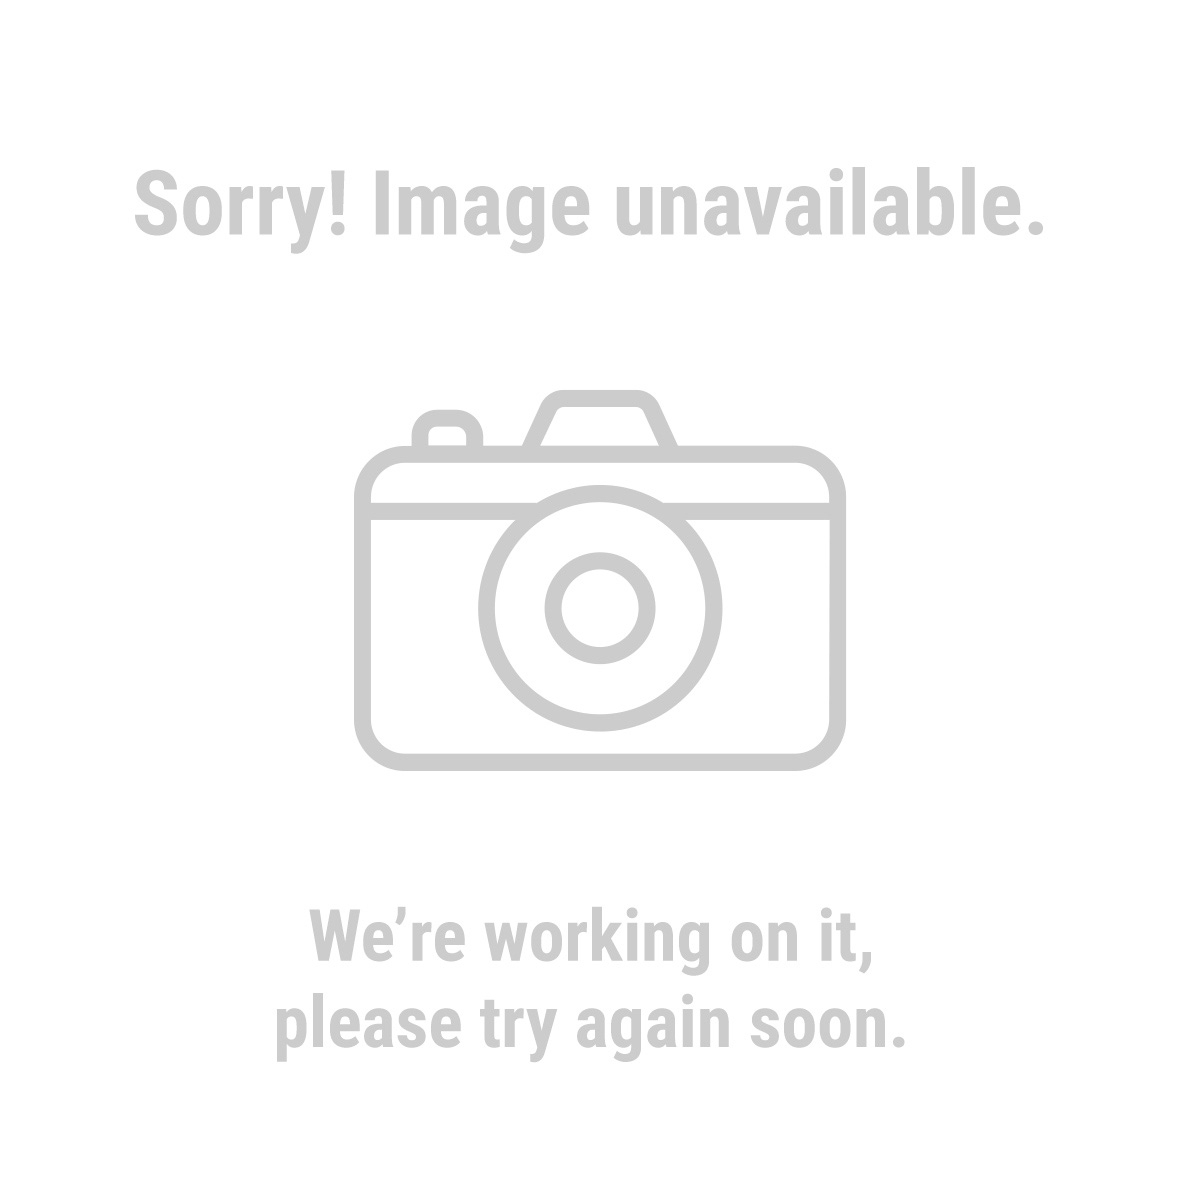 Western Safety 68512 Pack of 50 Black Nitrile Gloves, Size X-Large